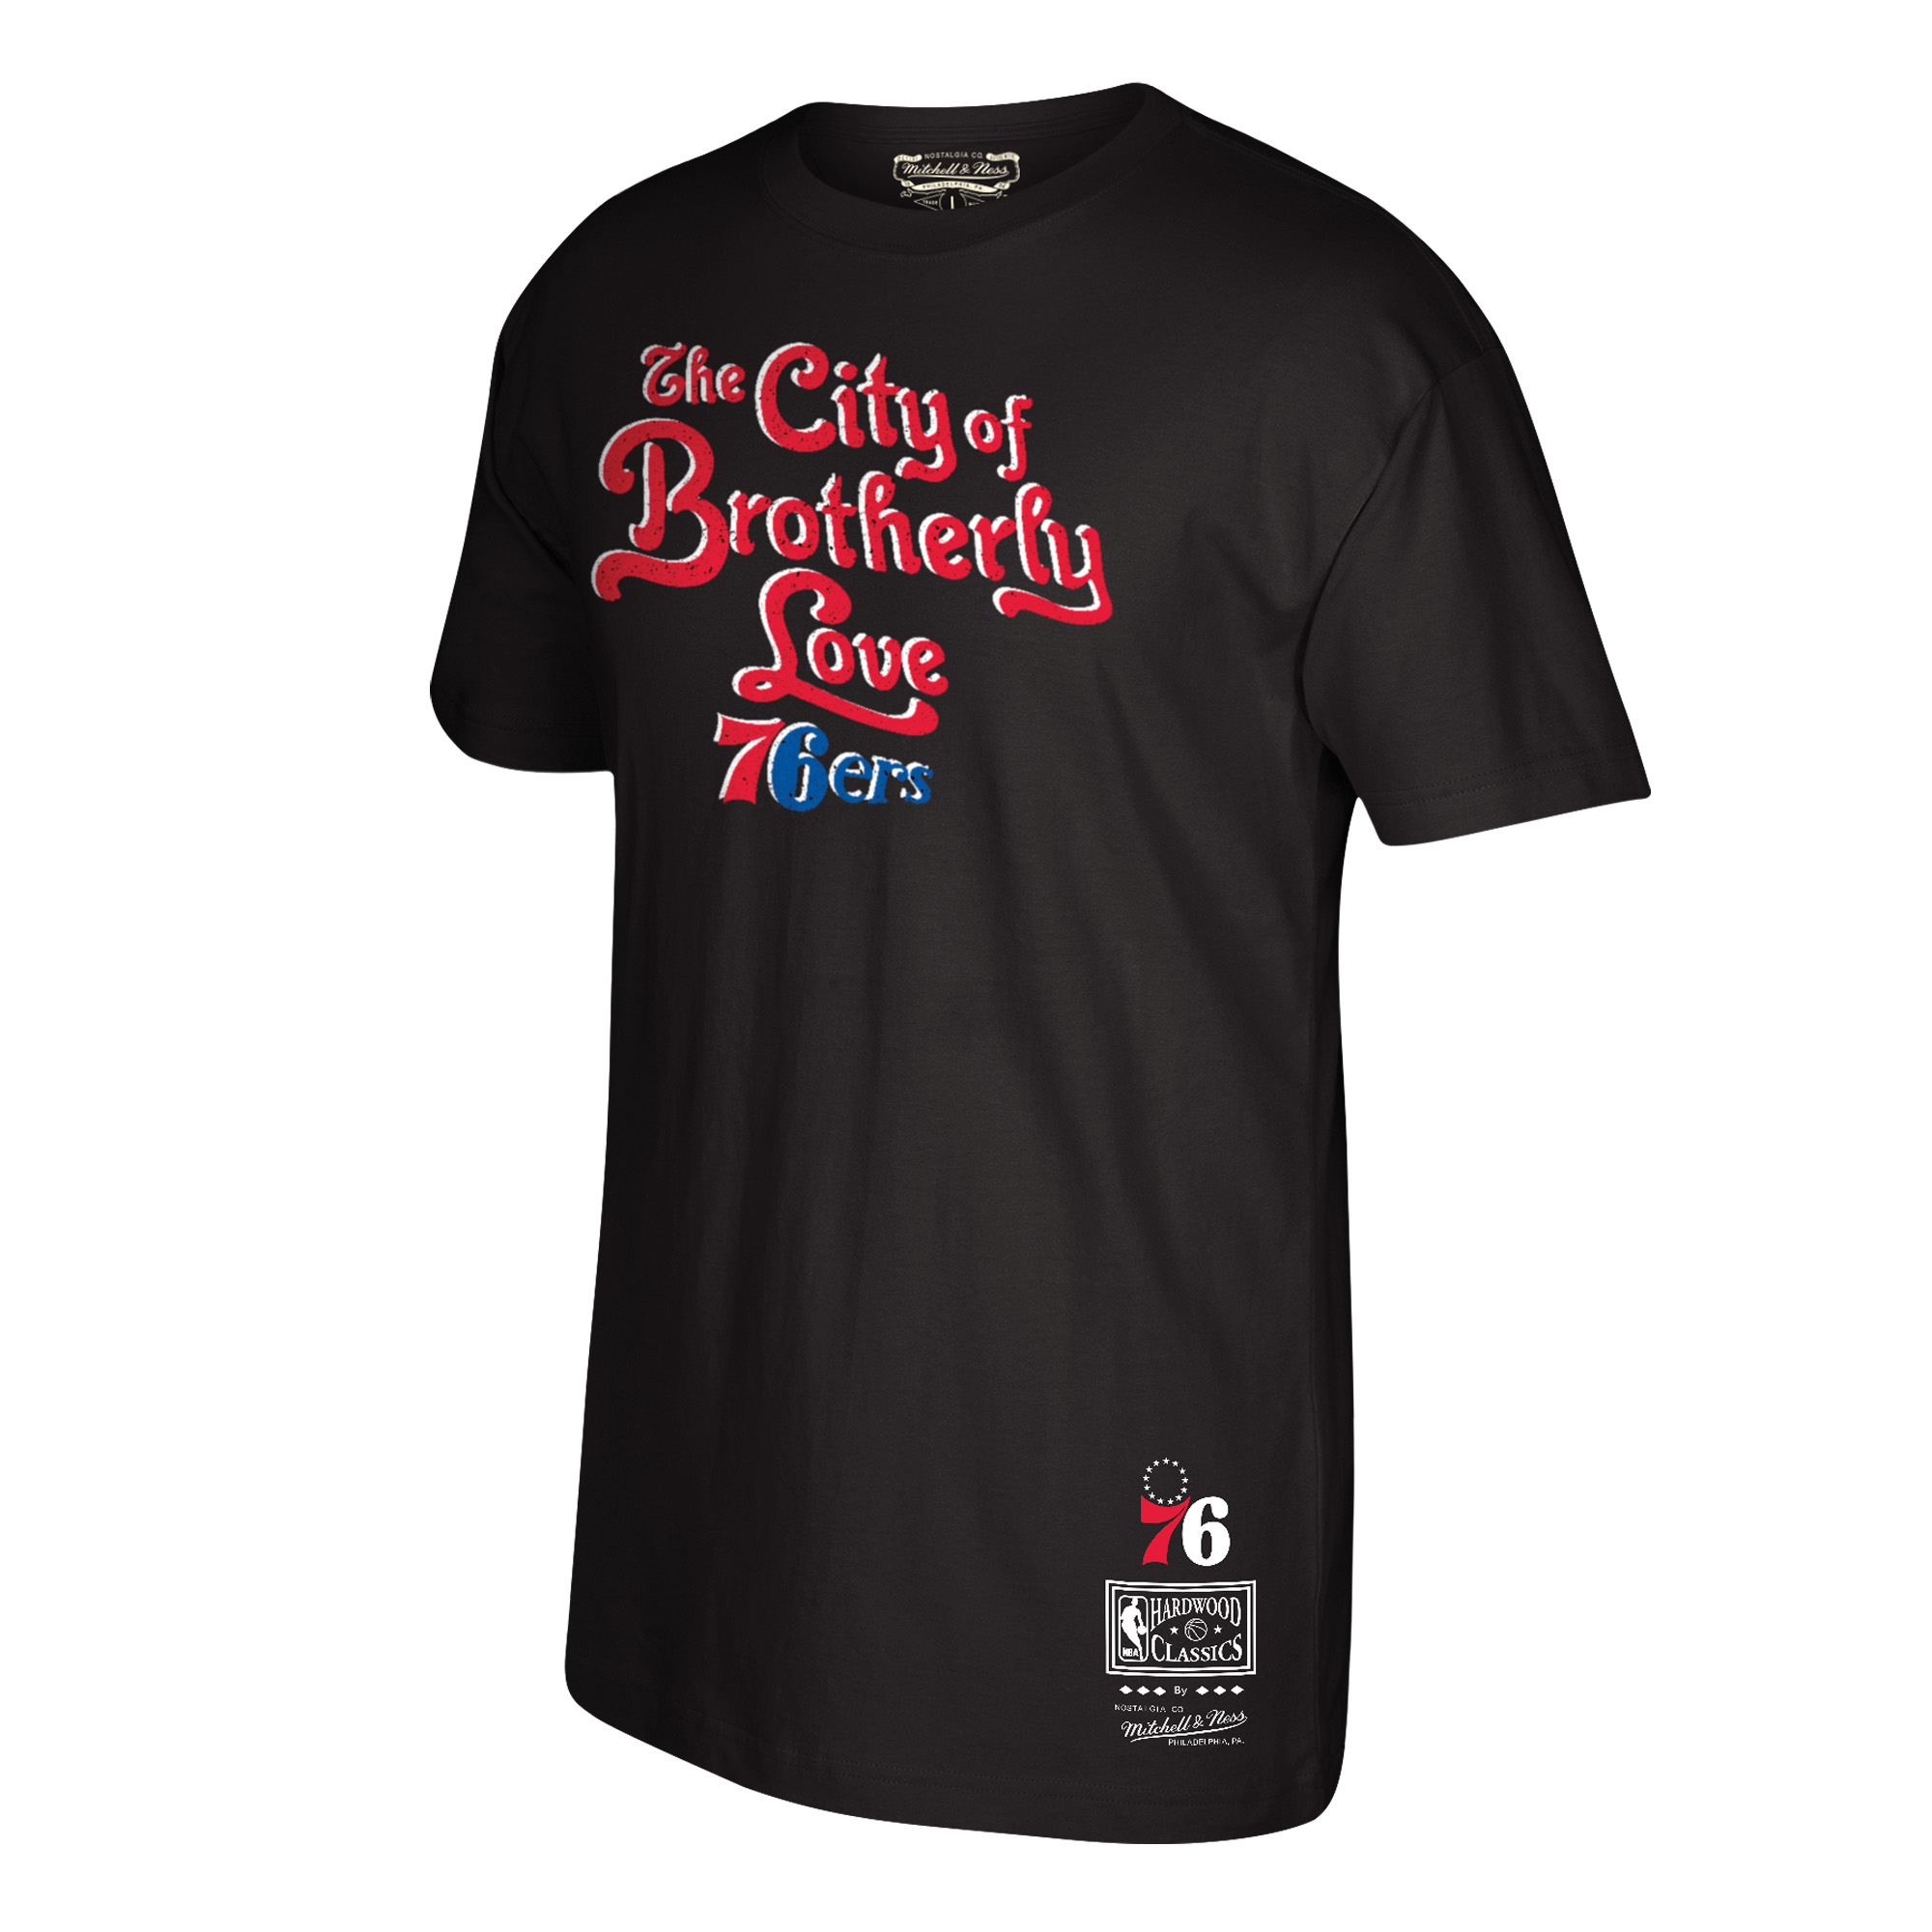 Philadelphia 76ers Mitchell & Ness Hardwood Classics City of Brotherly Love Hometown T-Shirt - Charcoal